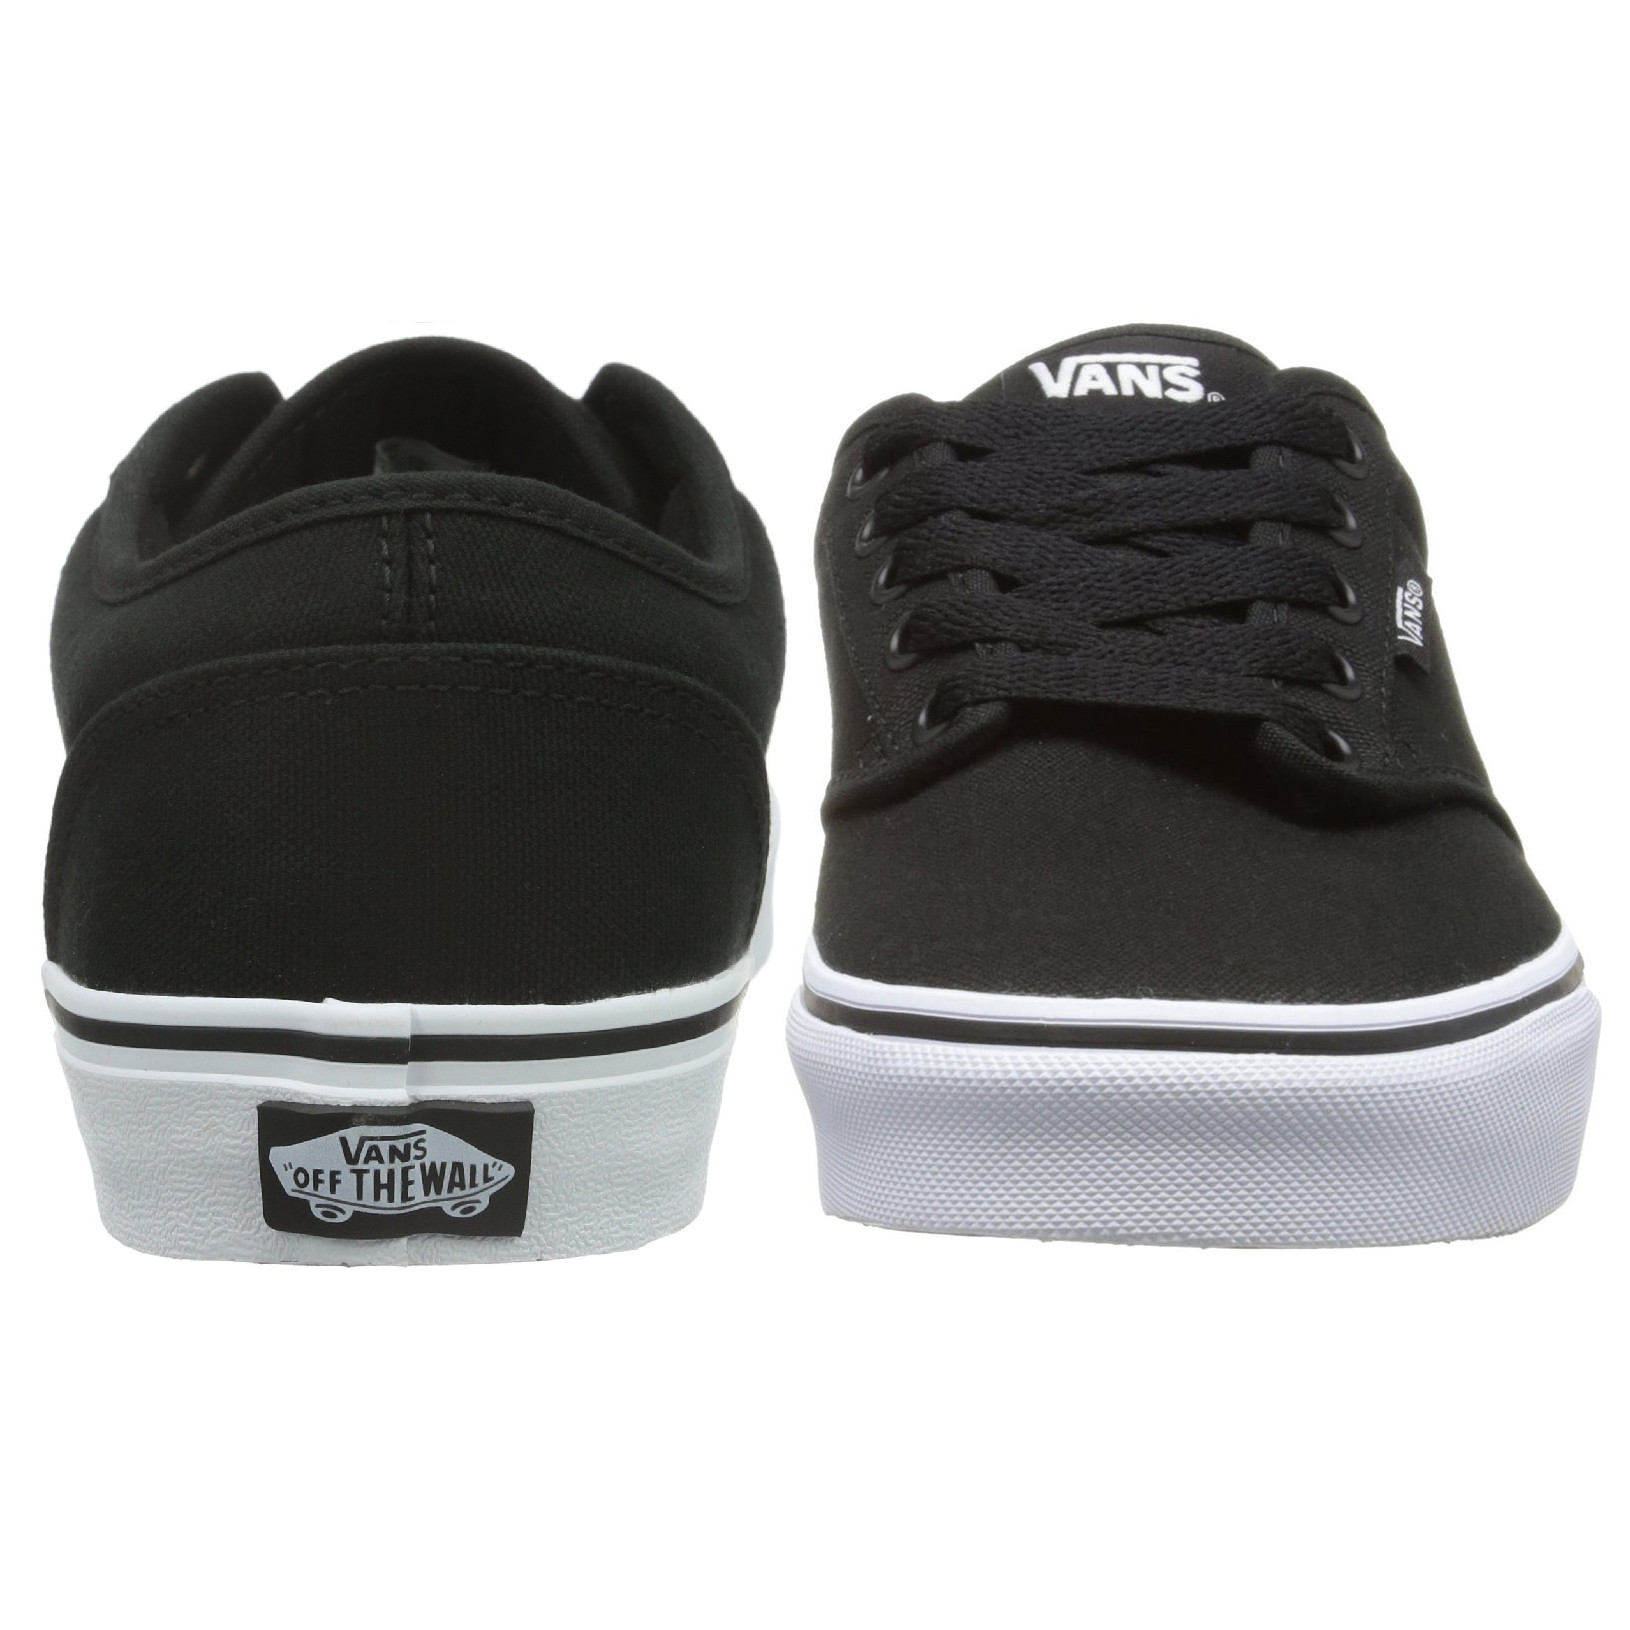 0cd2e0958e1 Vans Men s Atwood Canvas Trainers Black White